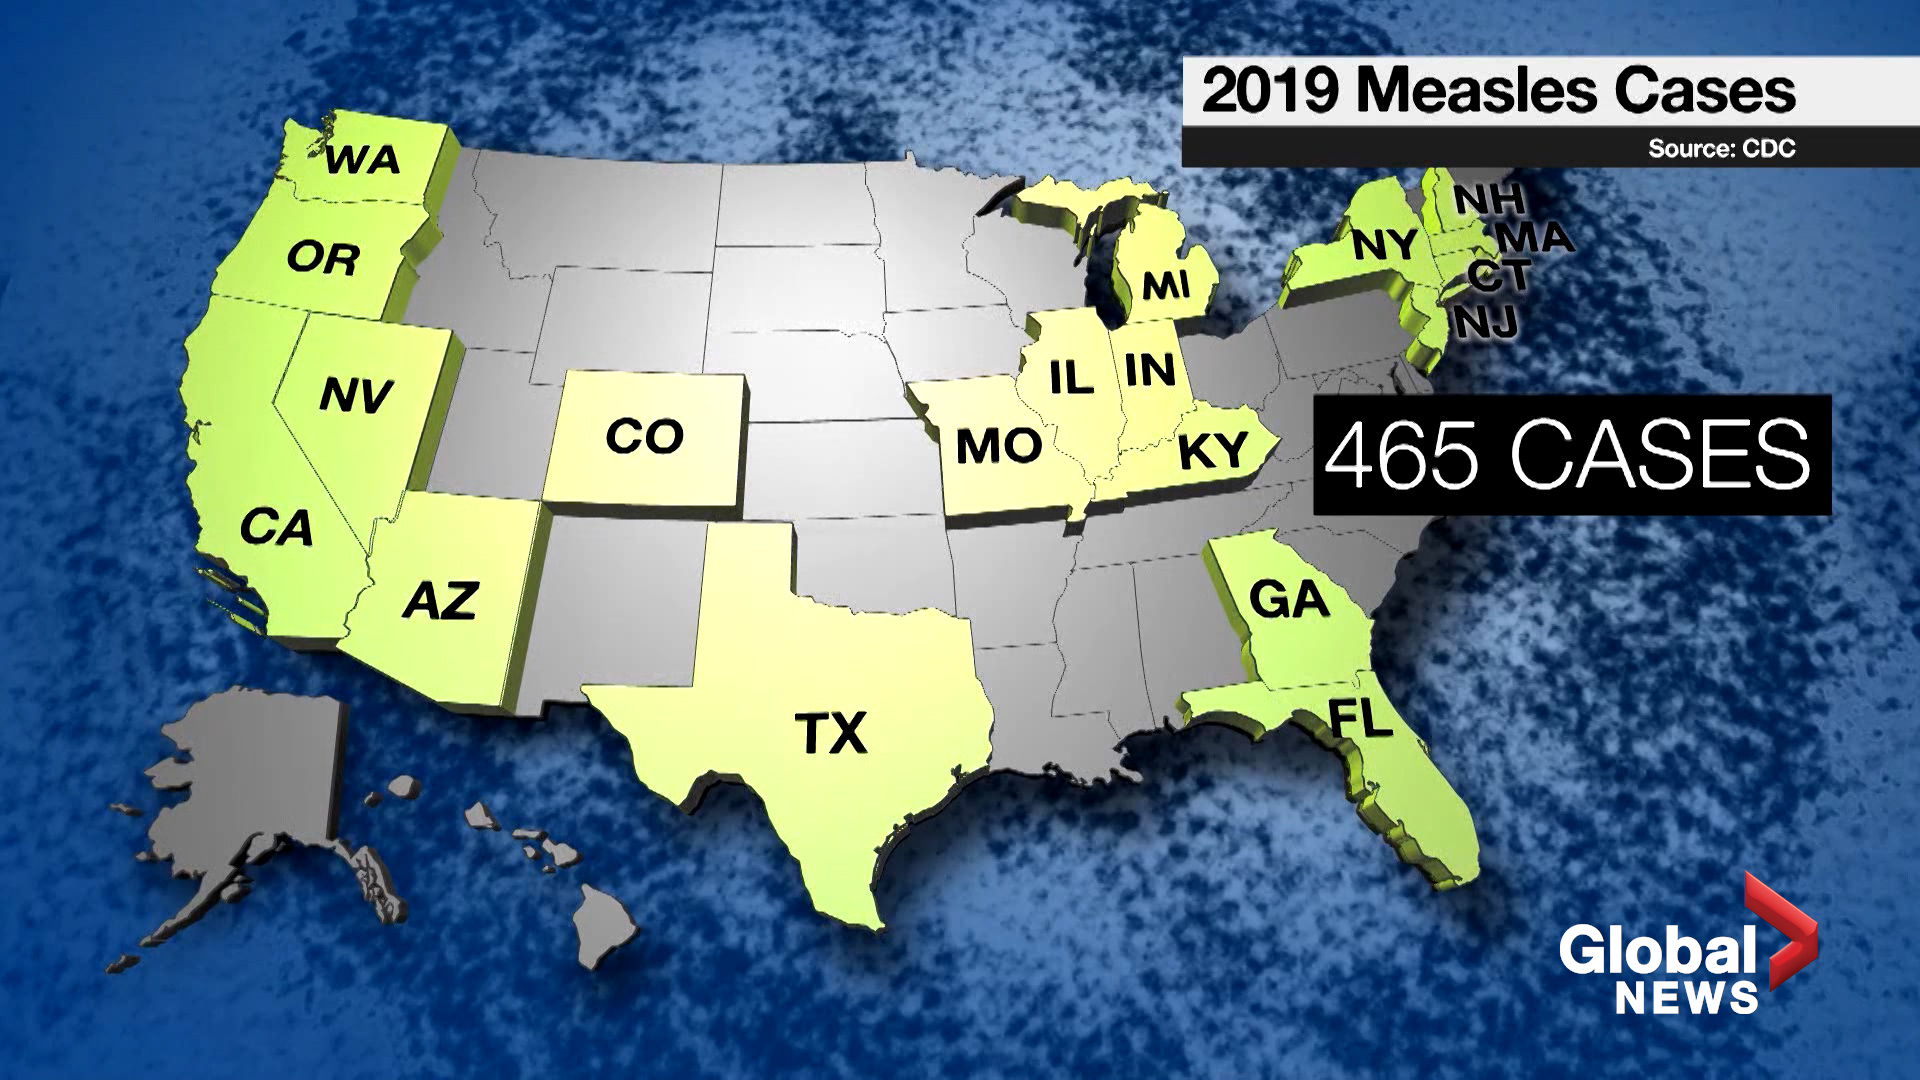 Number of measles cases rocket amid warnings of poor vaccination rates